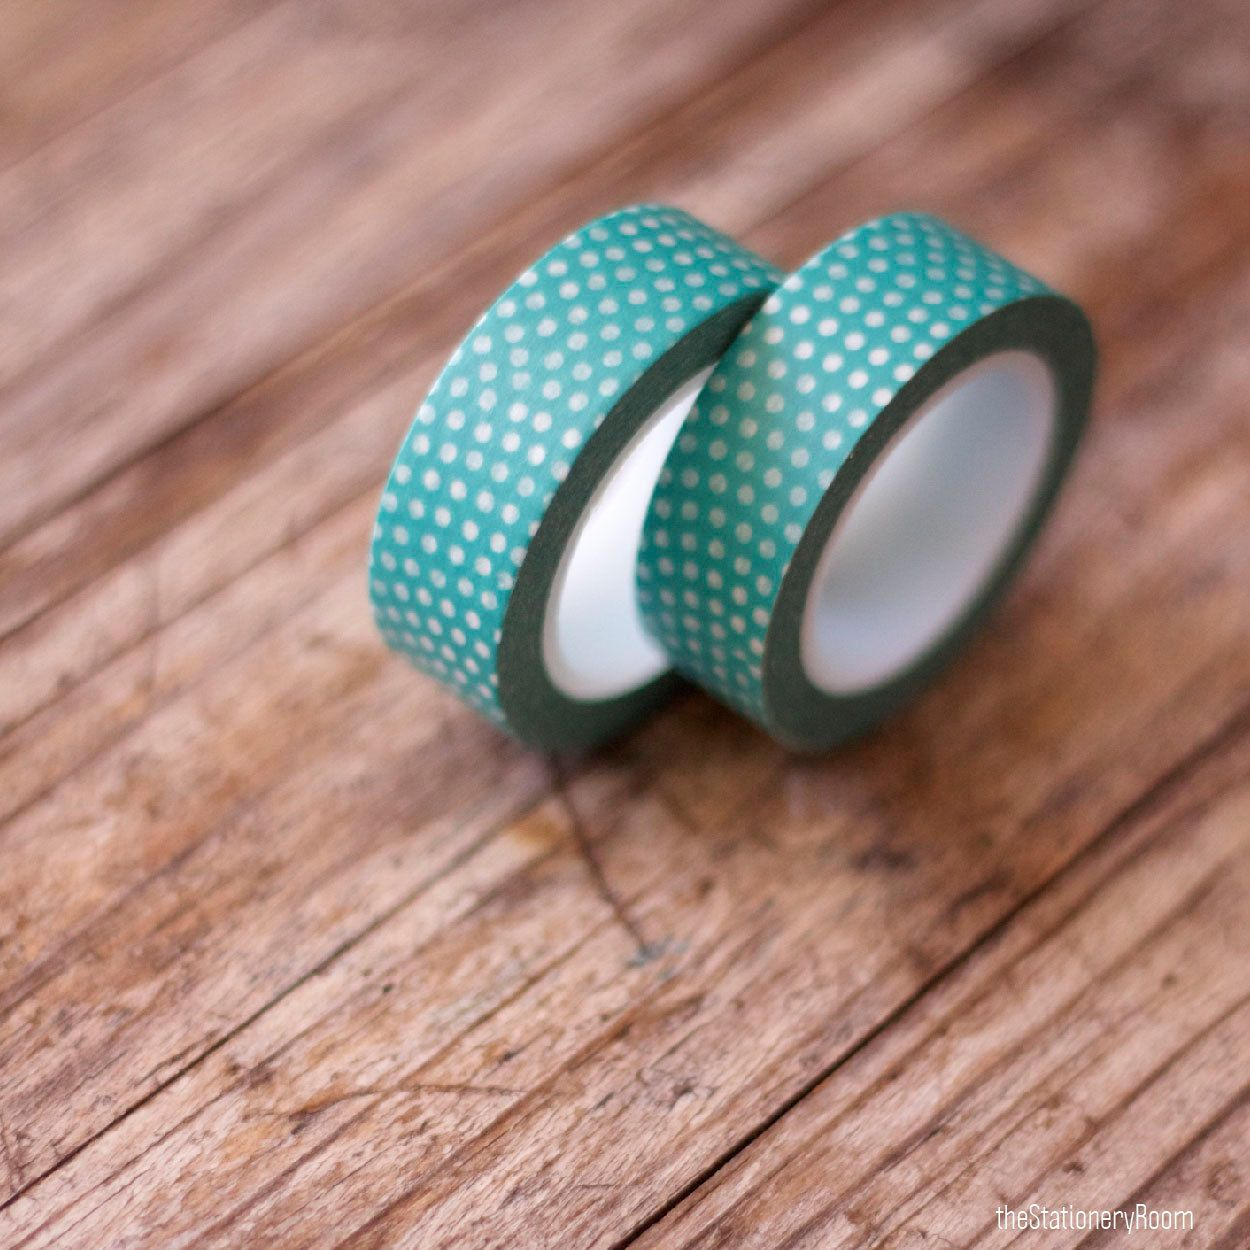 Japanese washi tape masking tape roll in aqua green and